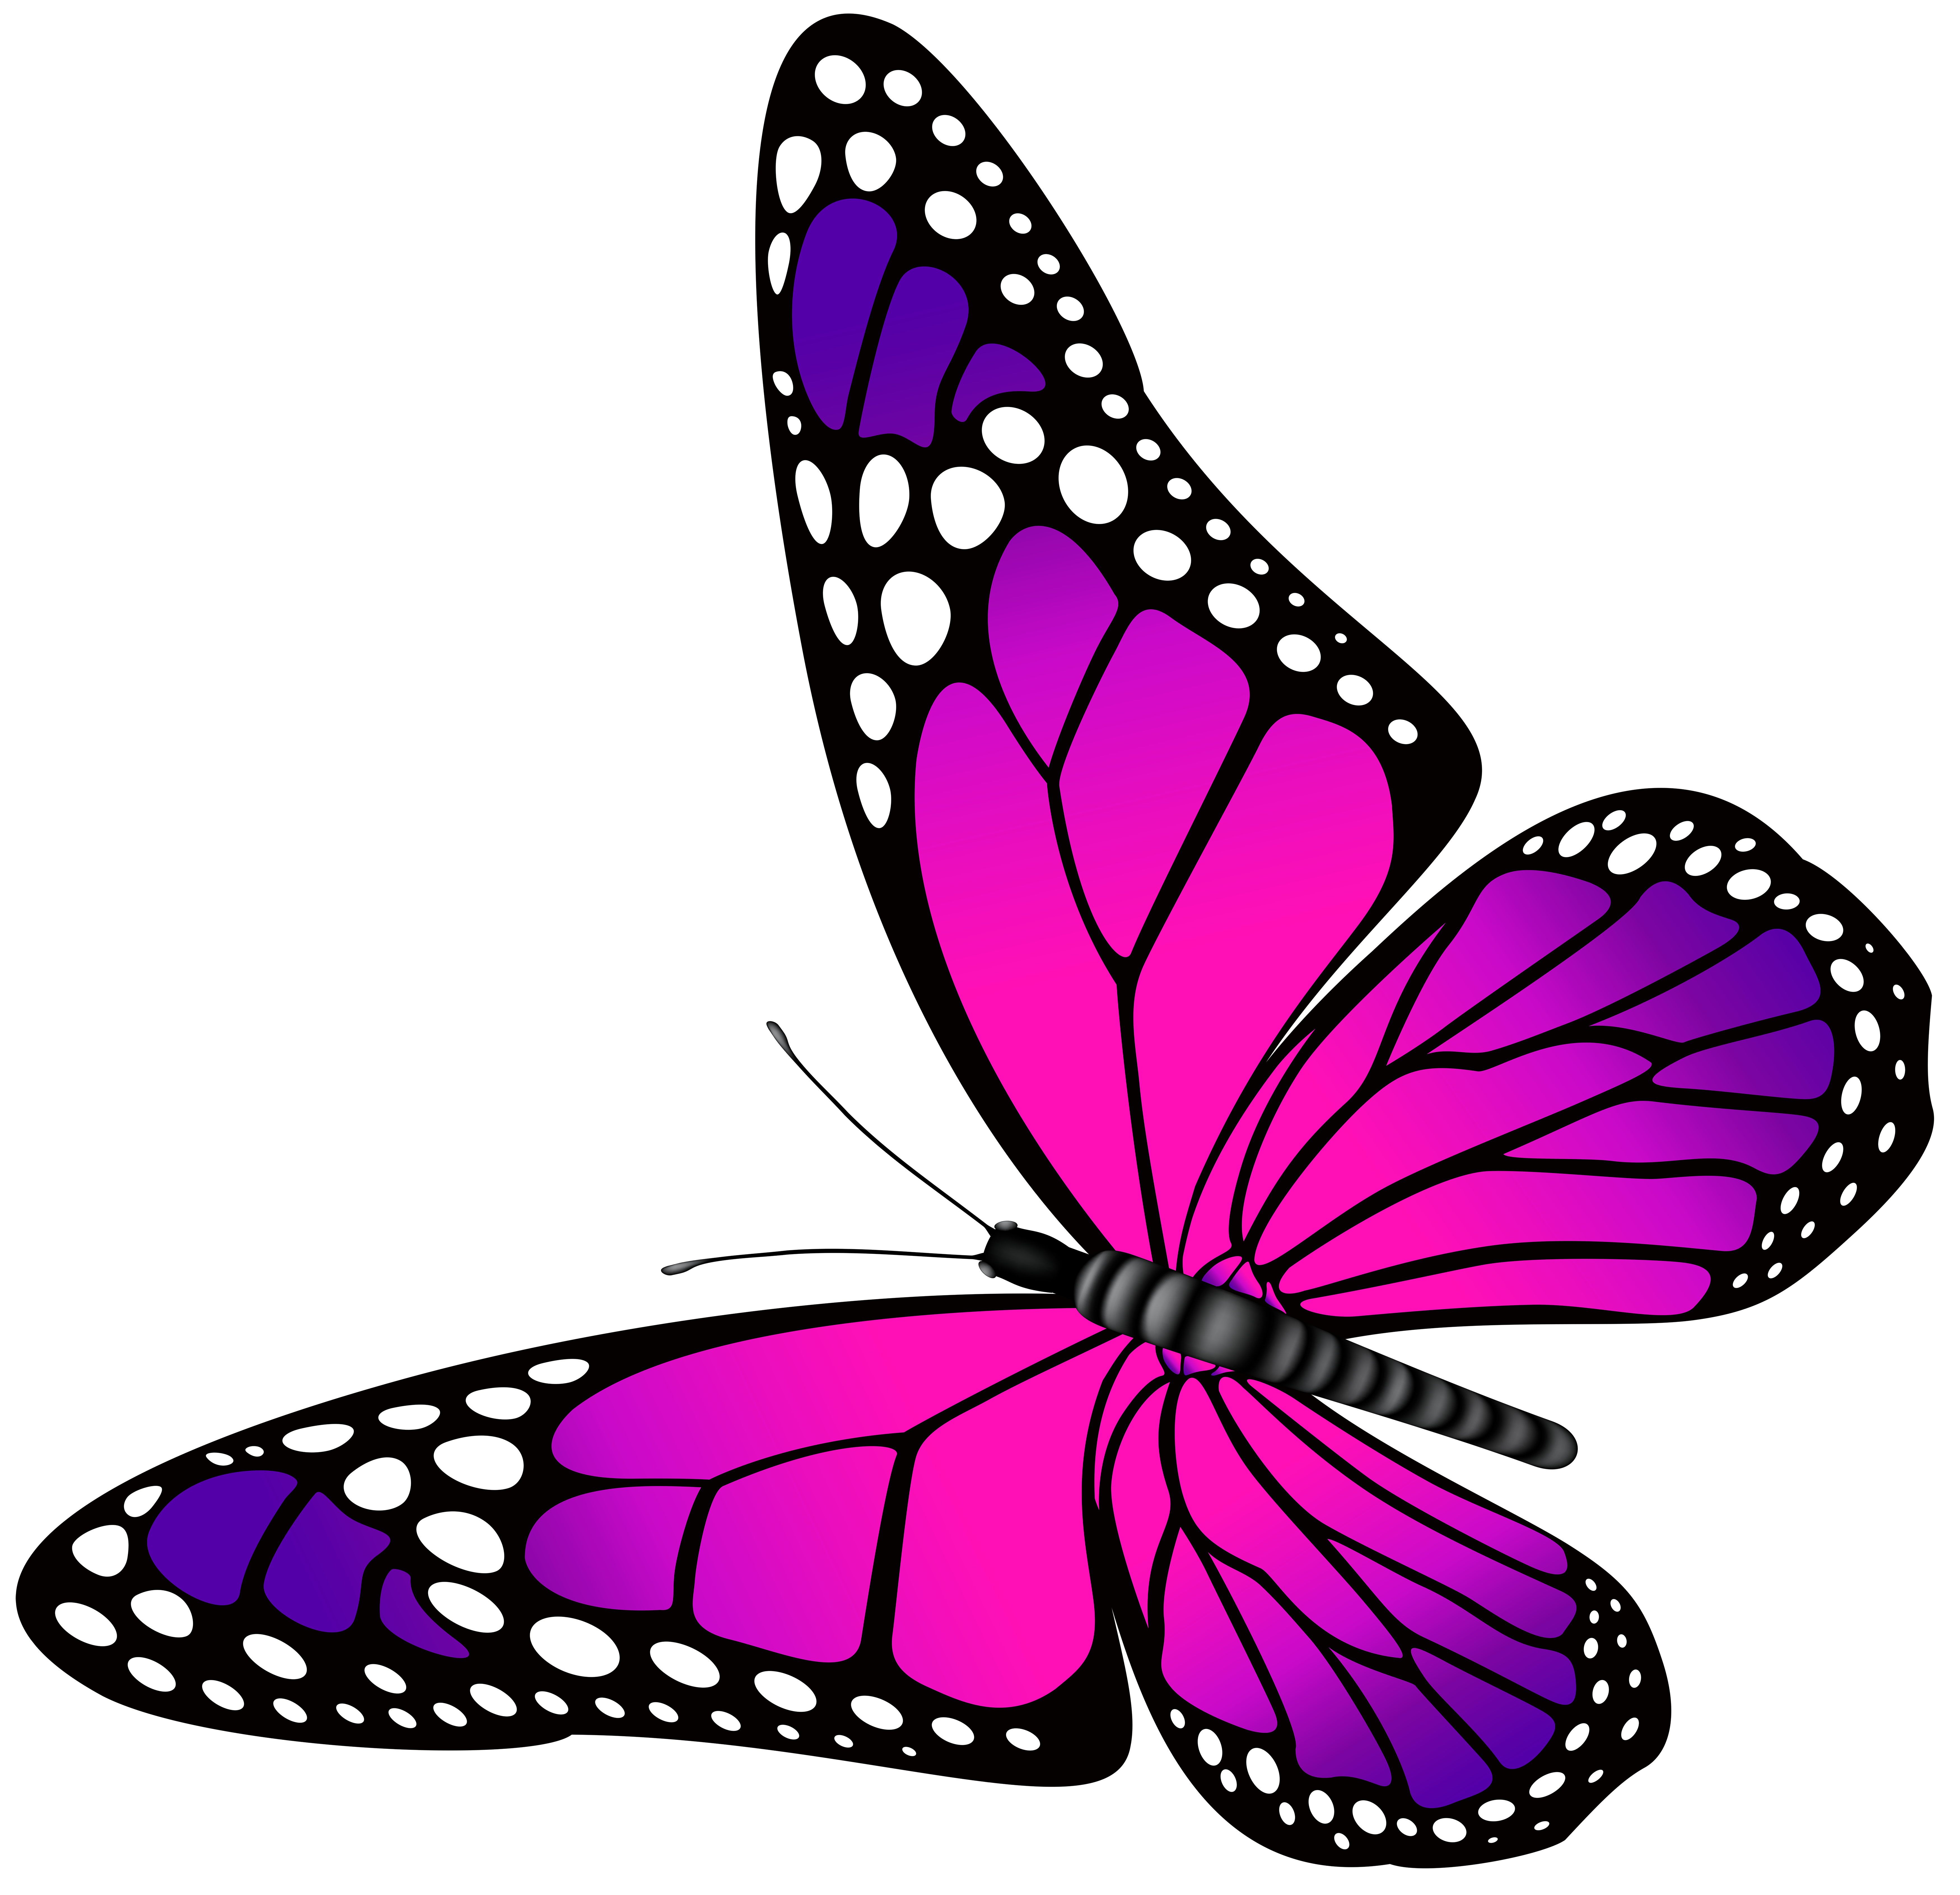 And purple transparent png. Glitter clipart light pink butterfly clipart free library